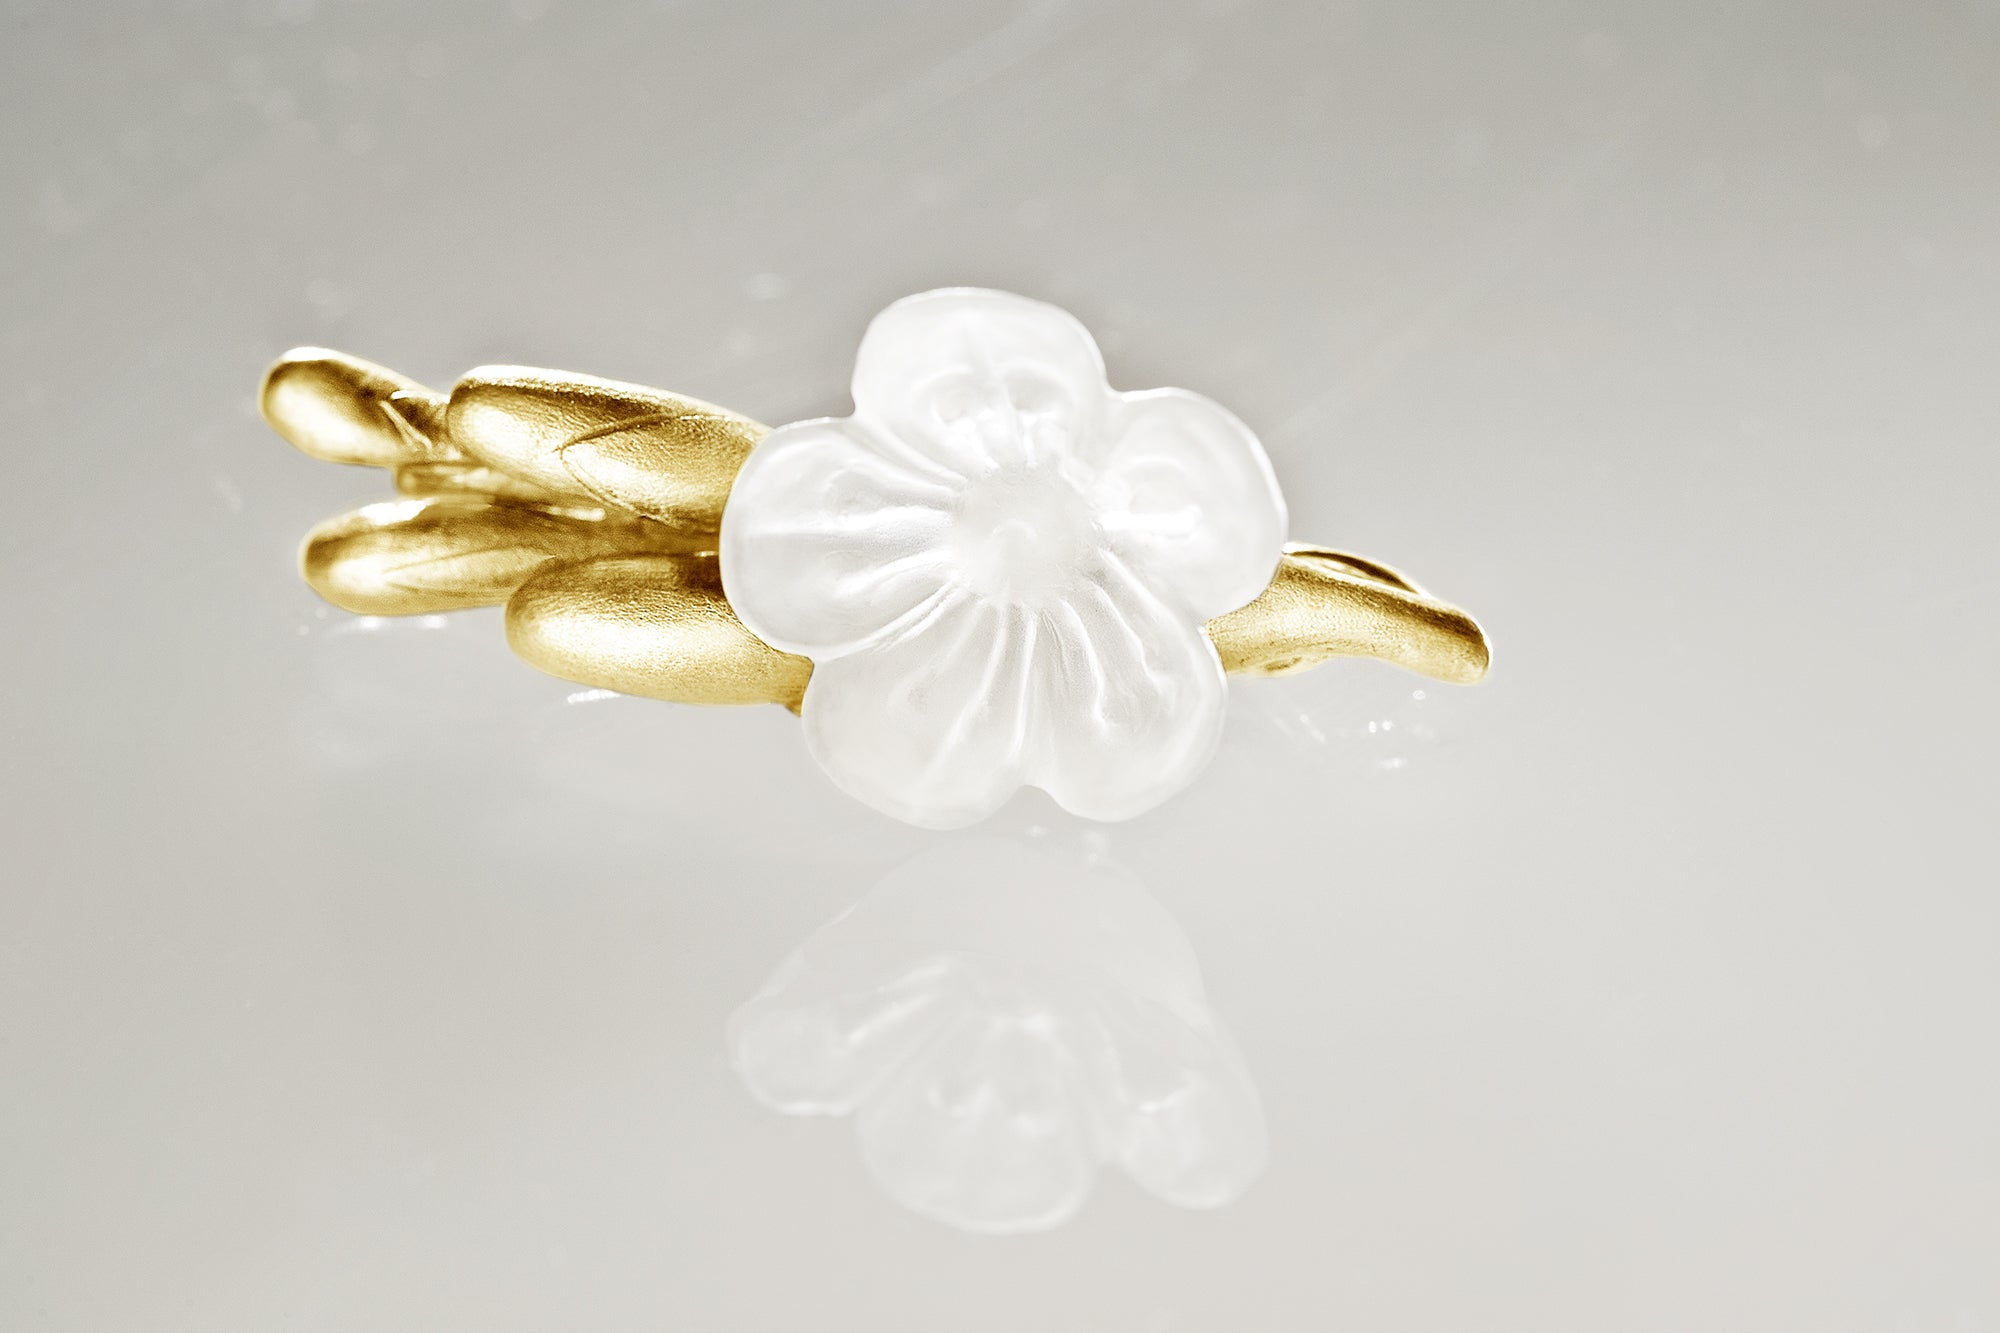 18 Karat Yellow Gold Freesia Contemporary Brooch with Quartz Flower